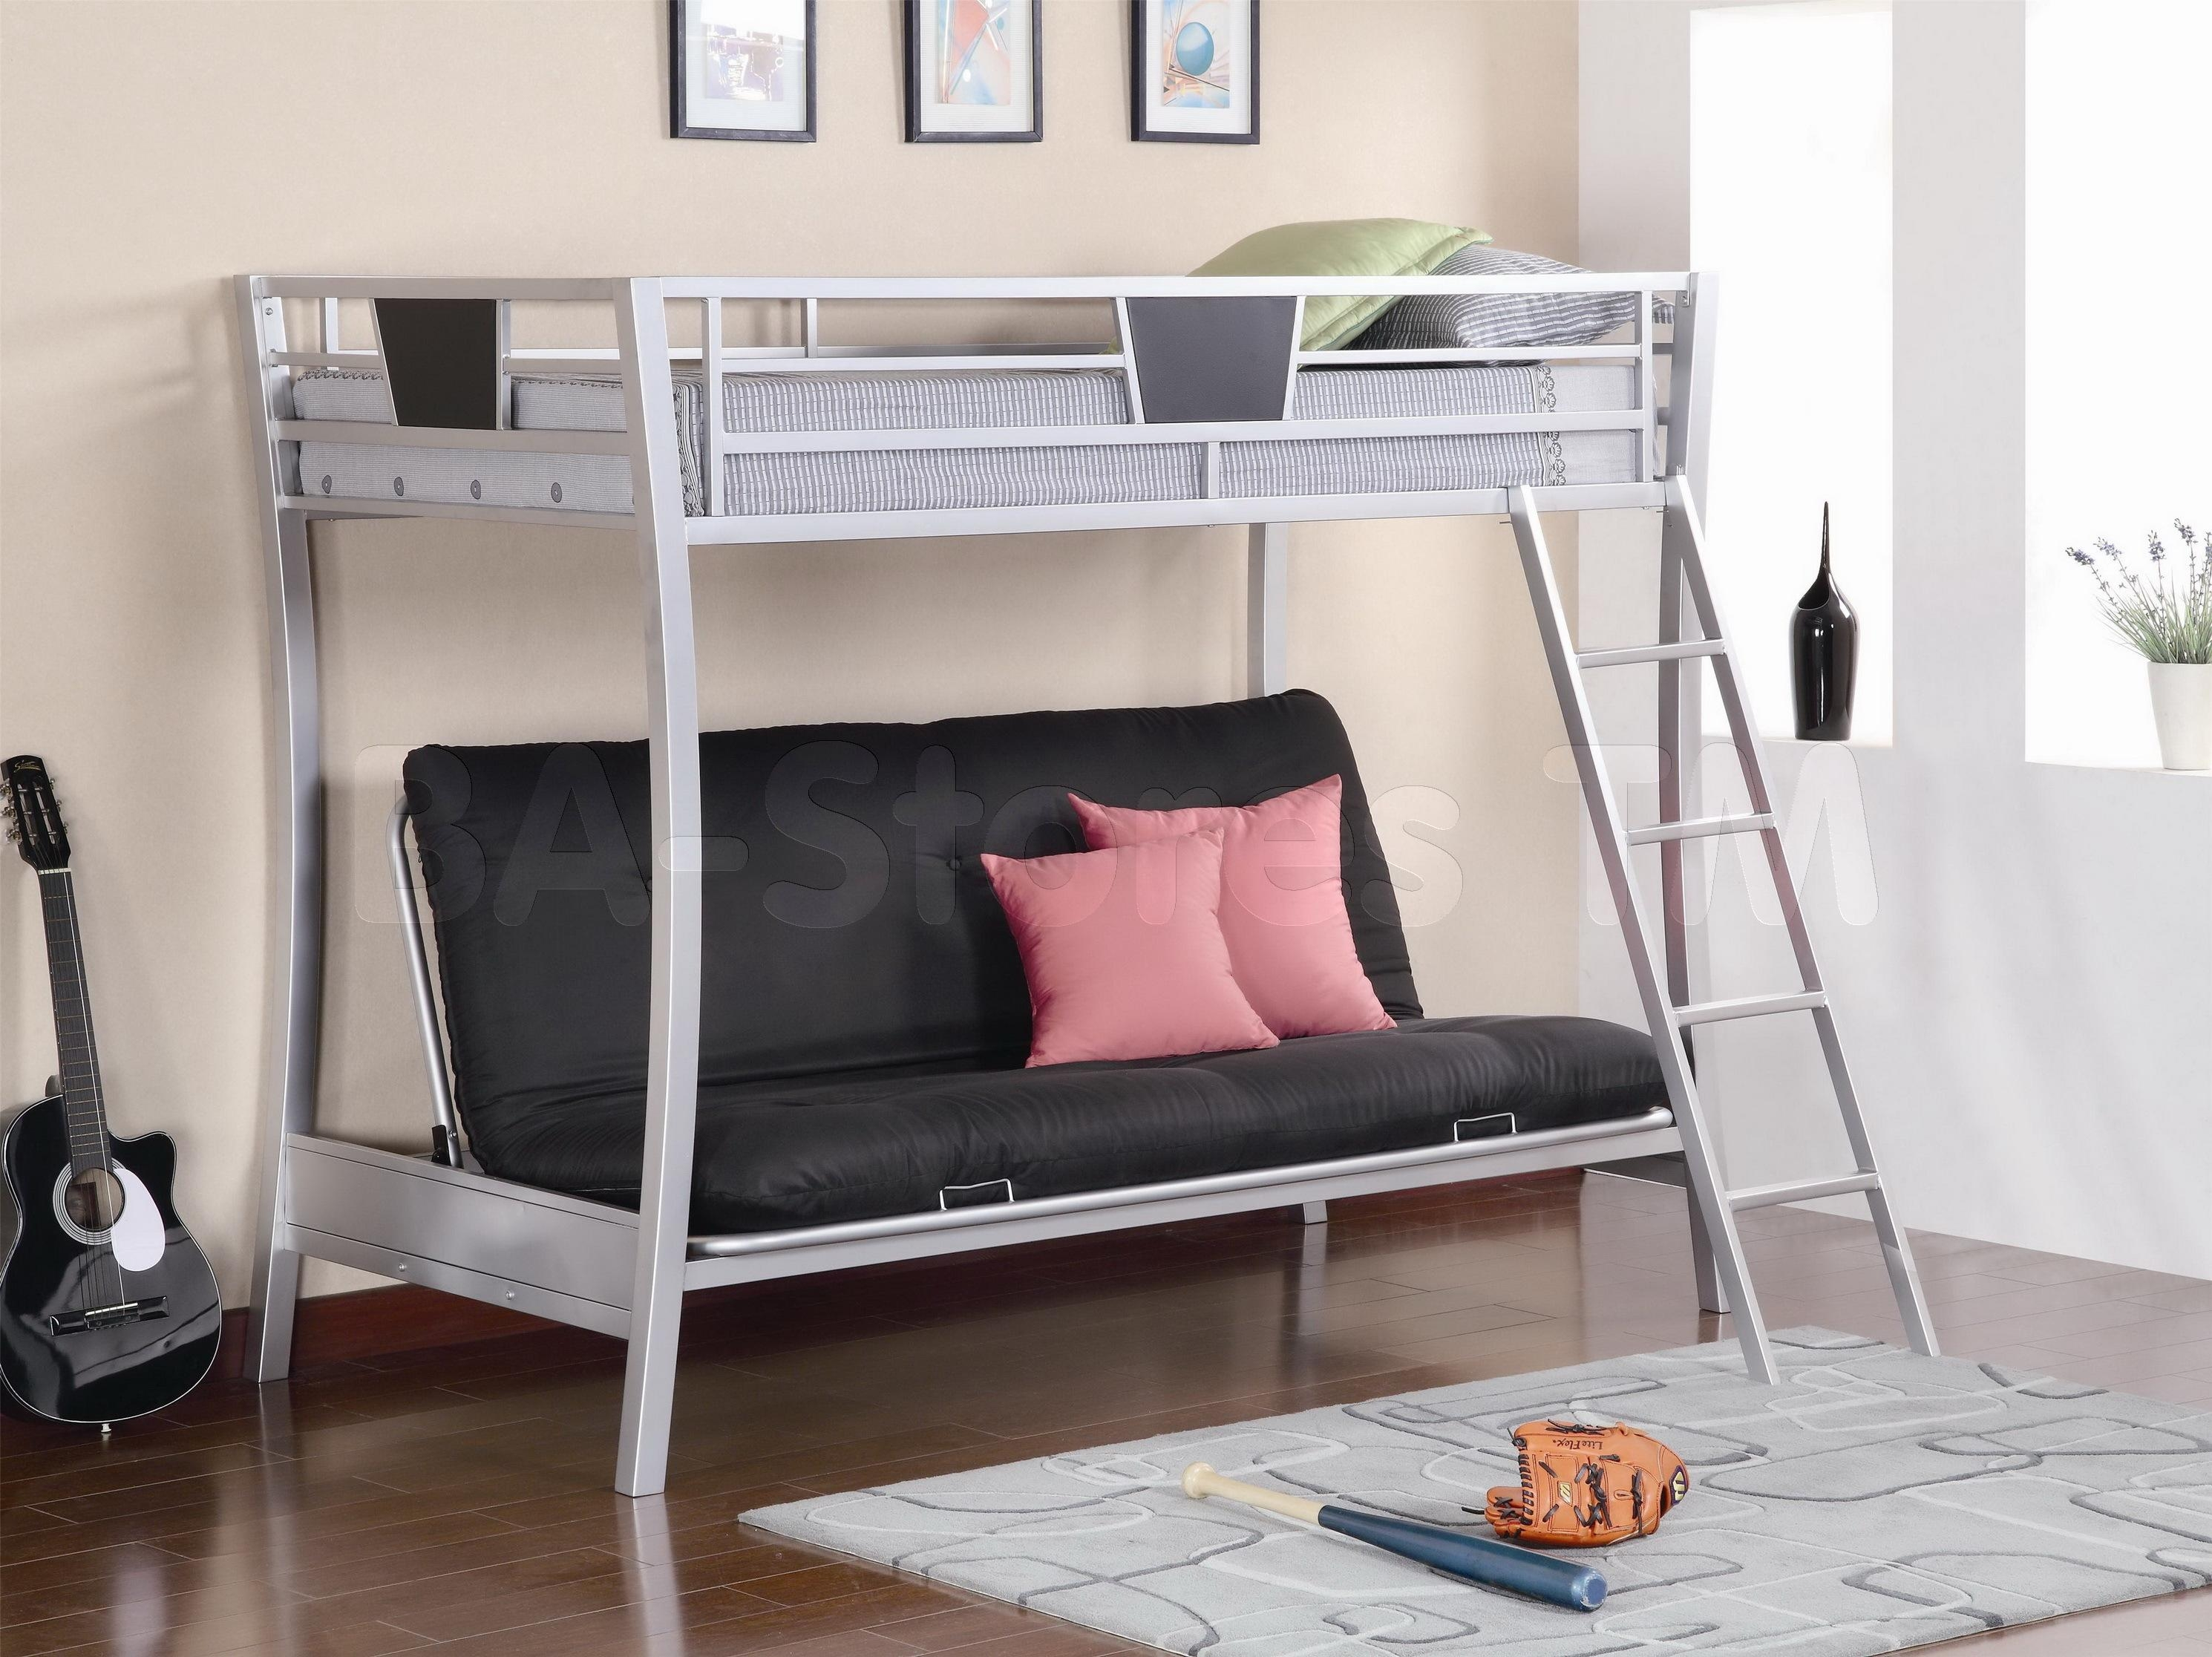 Bed With Desk Under Uk. Bunk Bed Desk Ikea (View 7 of 20)